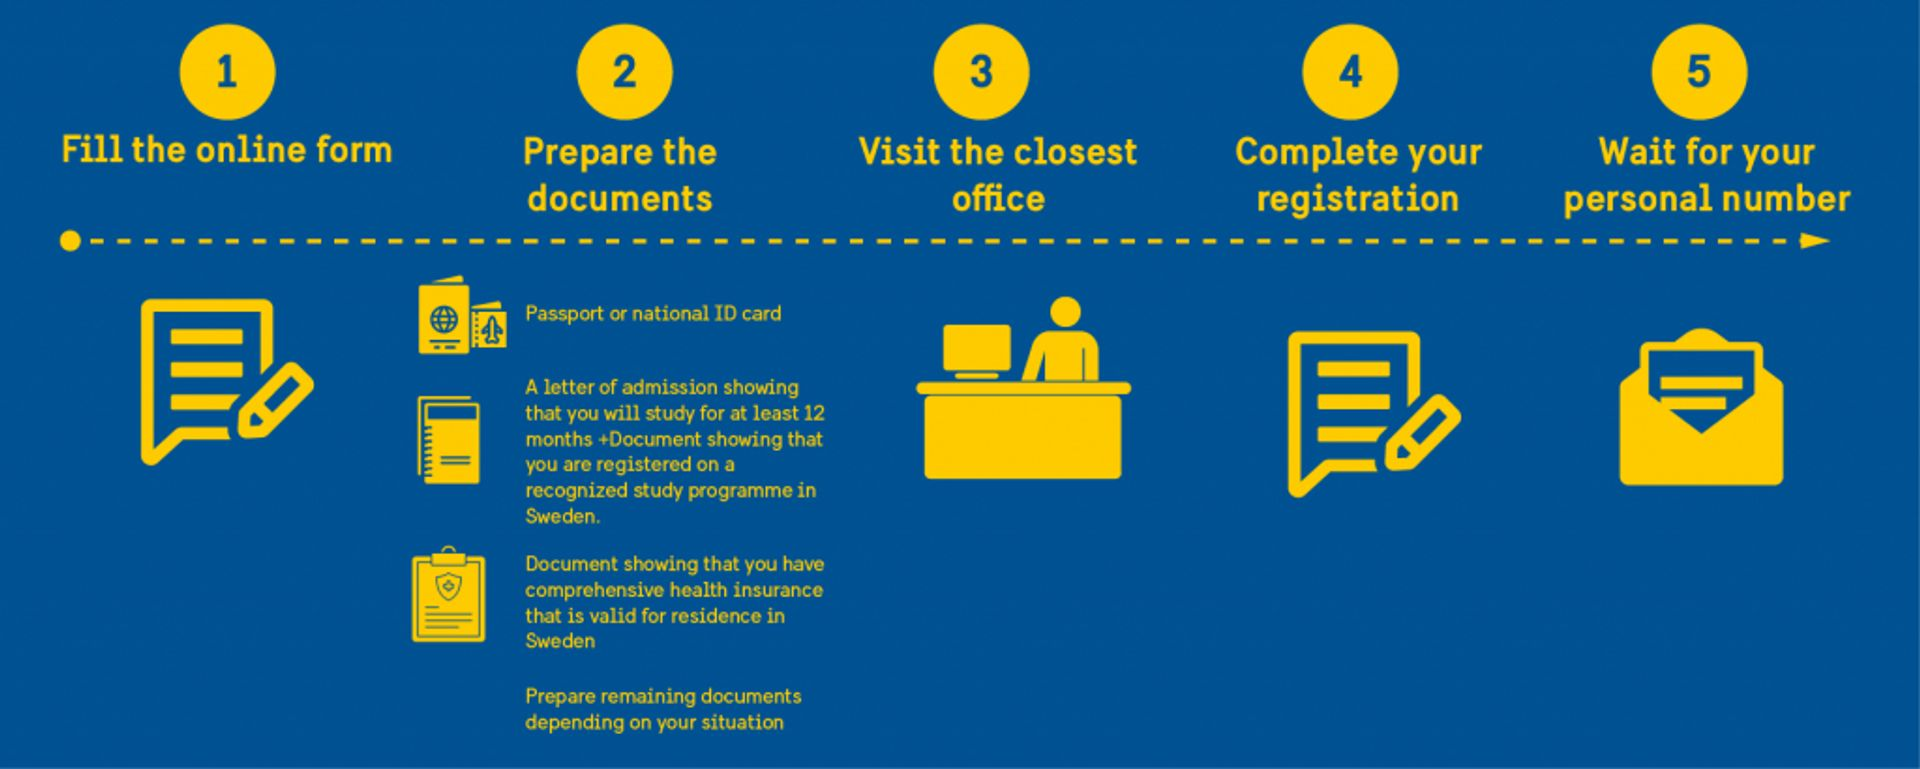 Diagram showing the steps to obtain the personal number. 1. fill the online form, 2. prepare the documents, 3. visit the closest office, 4. complete your registration, 5. wait for your personal number